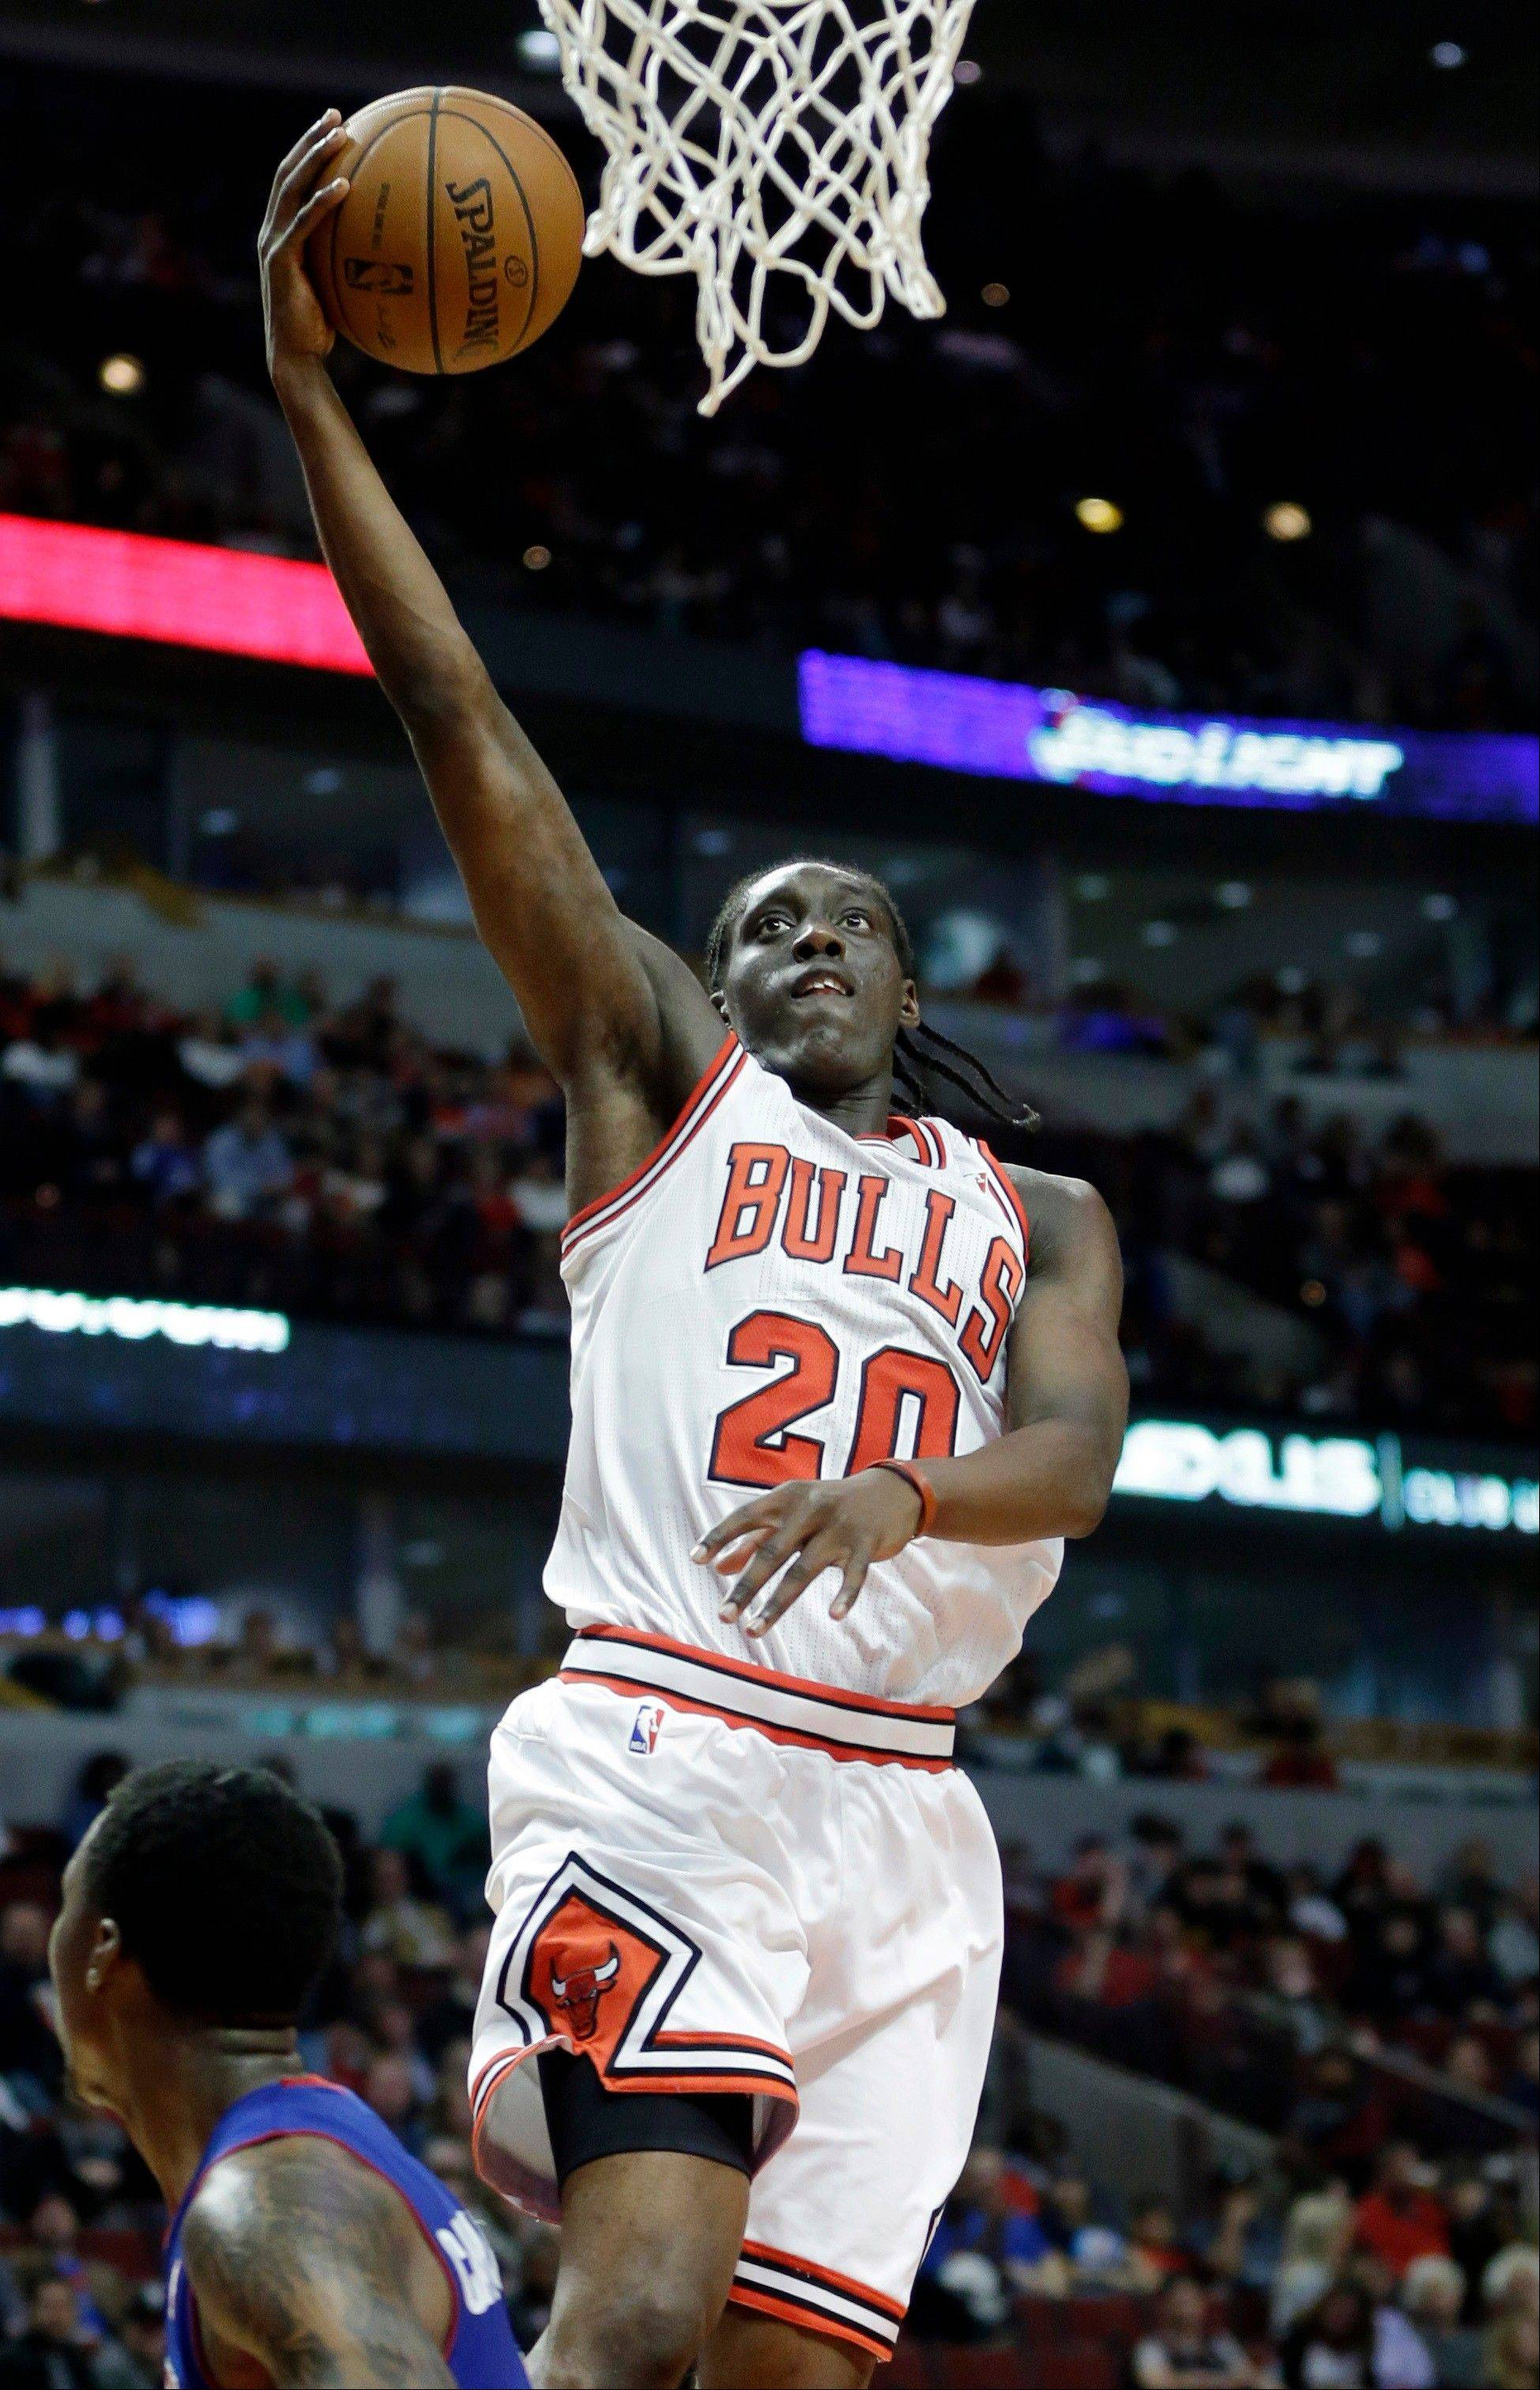 Bulls rookie forward Tony Snell drives to the basket during the second half of an NBA preseason basketball game against the Detroit Pistons in Chicago on Wednesday, Oct. 16, 2013. The Bulls won 96-81. (AP Photo/Nam Y. Huh)